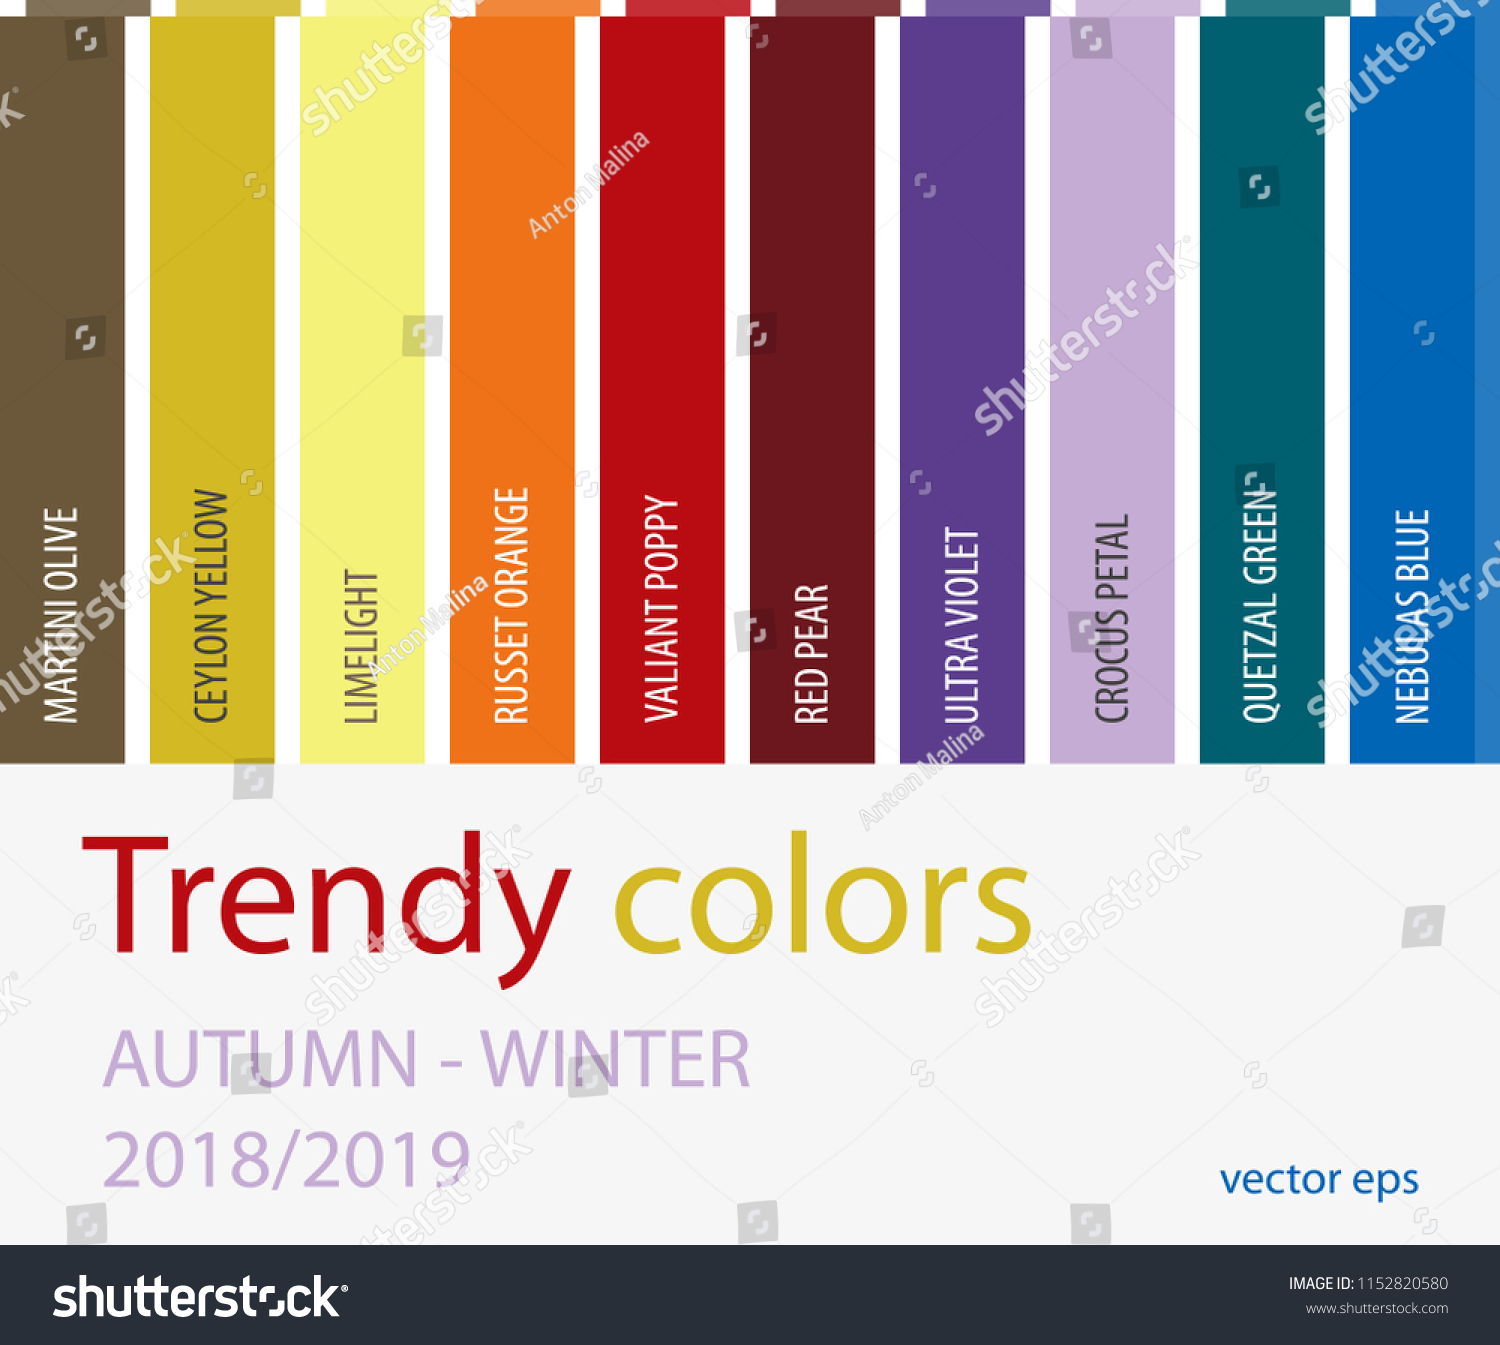 Color Trends Fall 2018 Autumn Winter 2018 2019 Color Trends Fashion Stock Vector Royalty